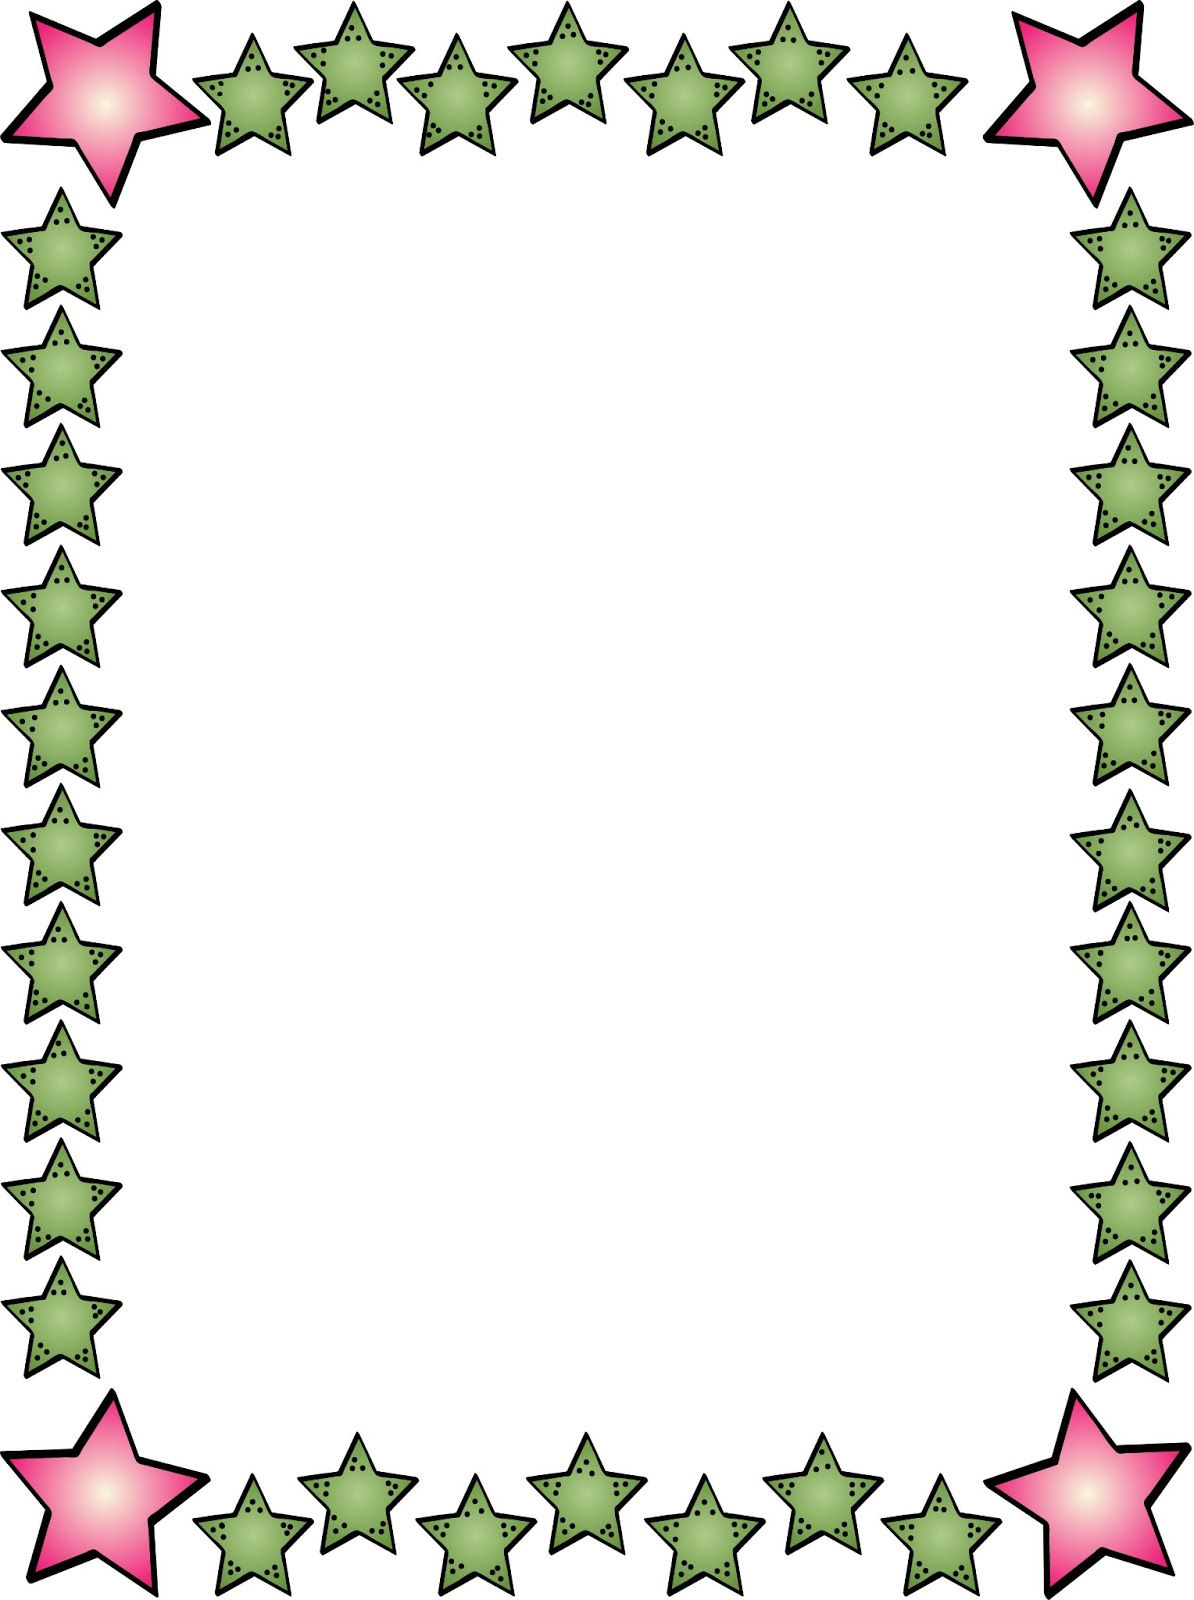 1194x1600 Star Certificate Border Clipart